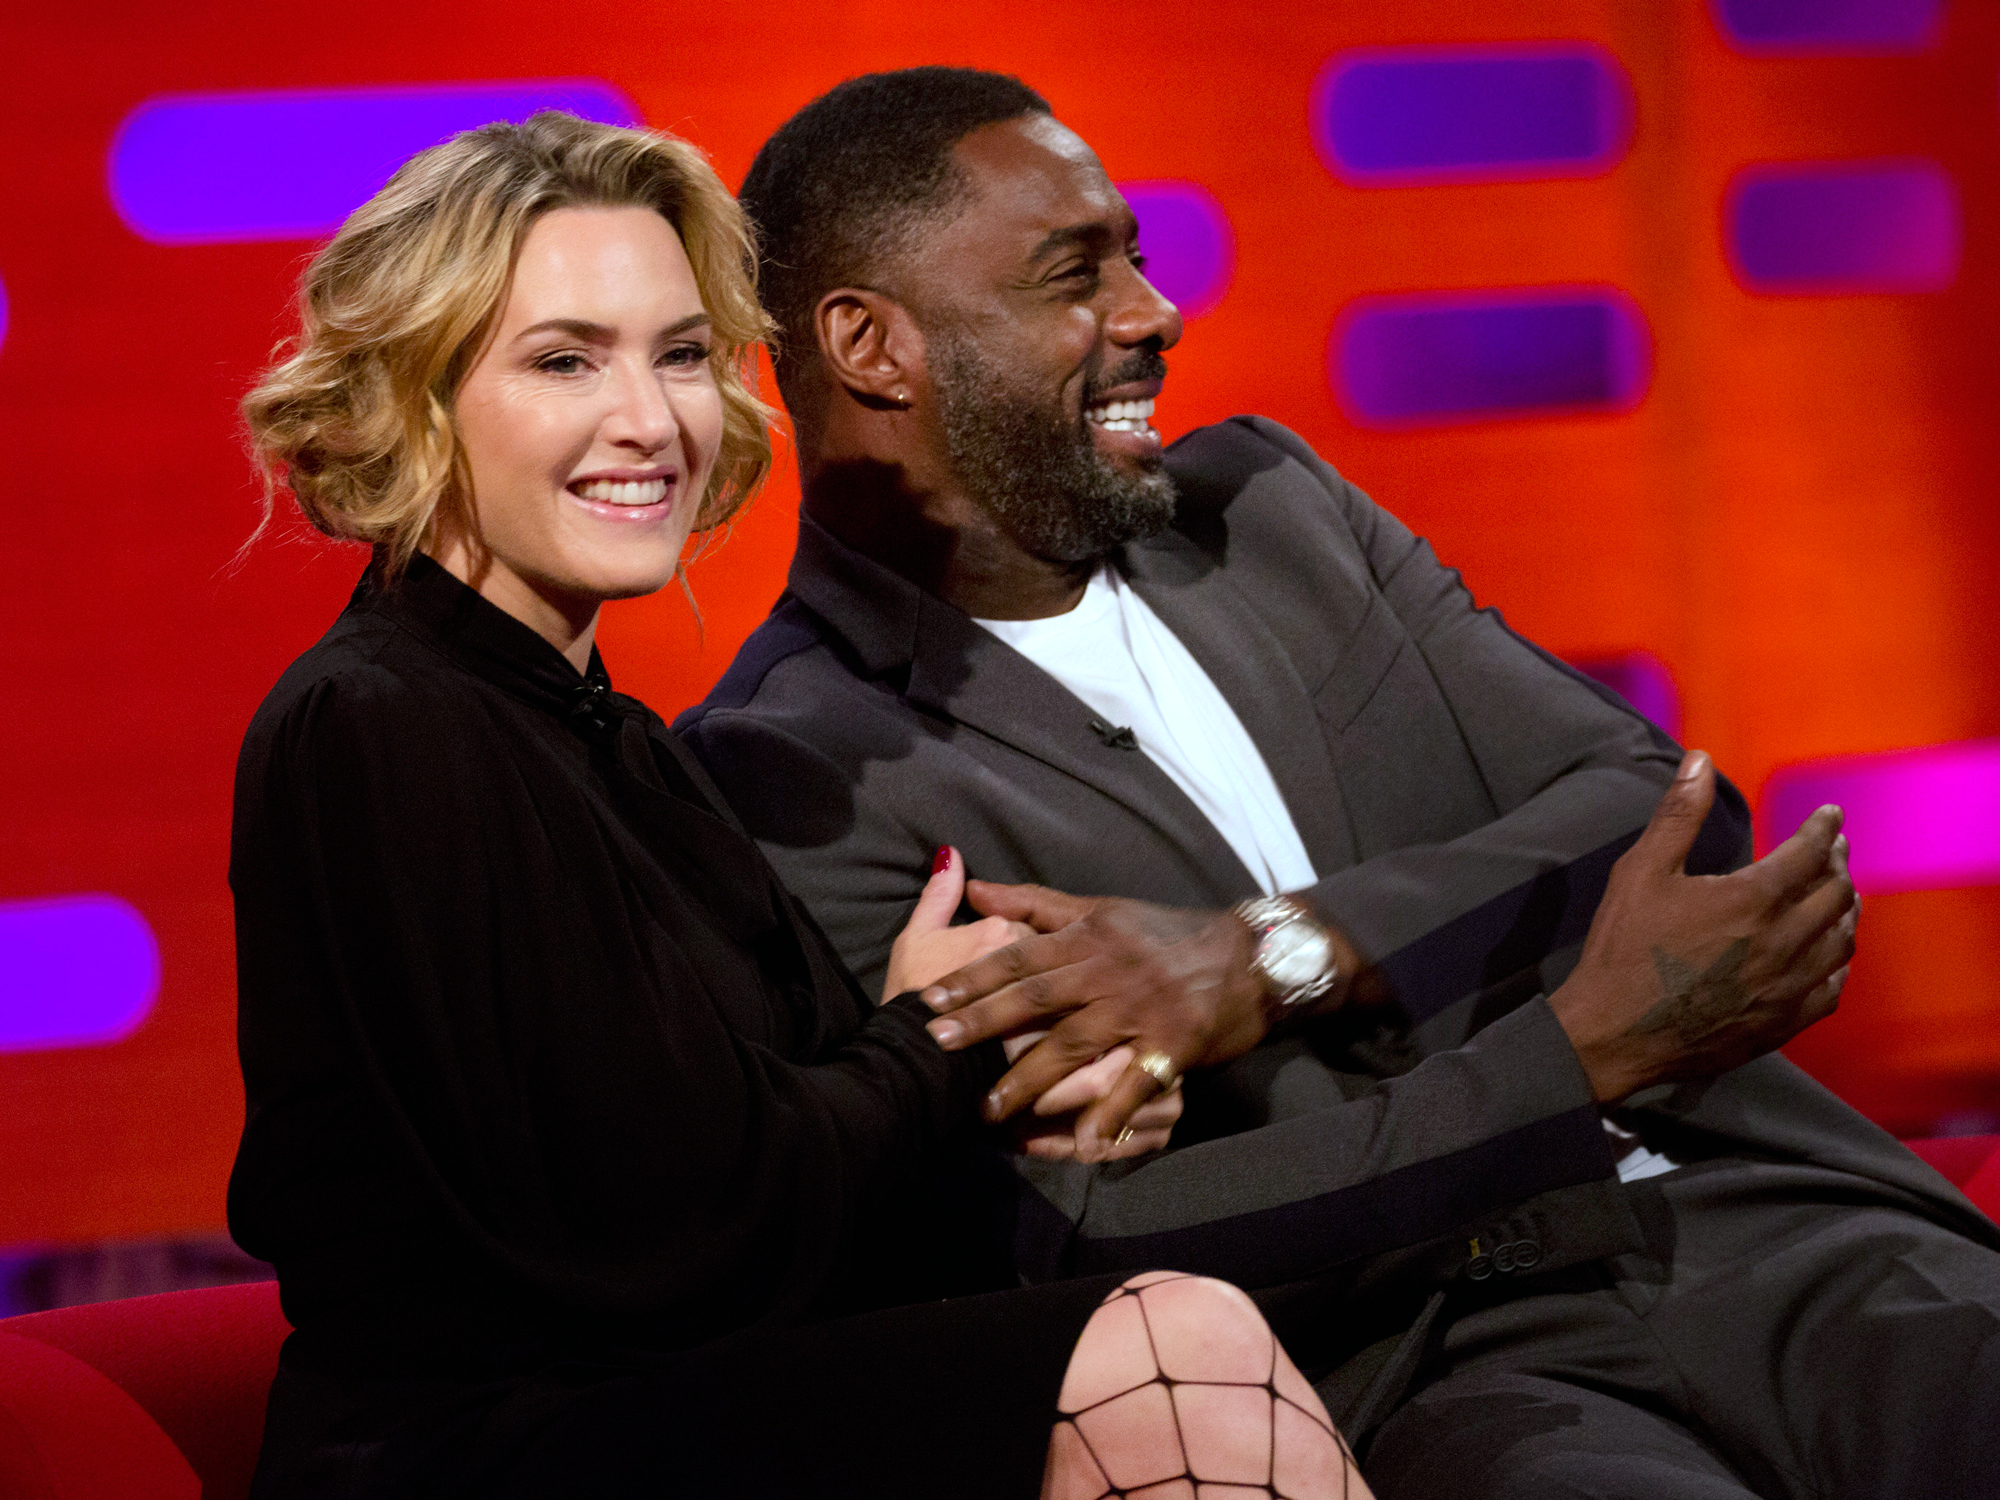 Kate Winslet Just Exposed Idris Elba's Unconventional Fetish